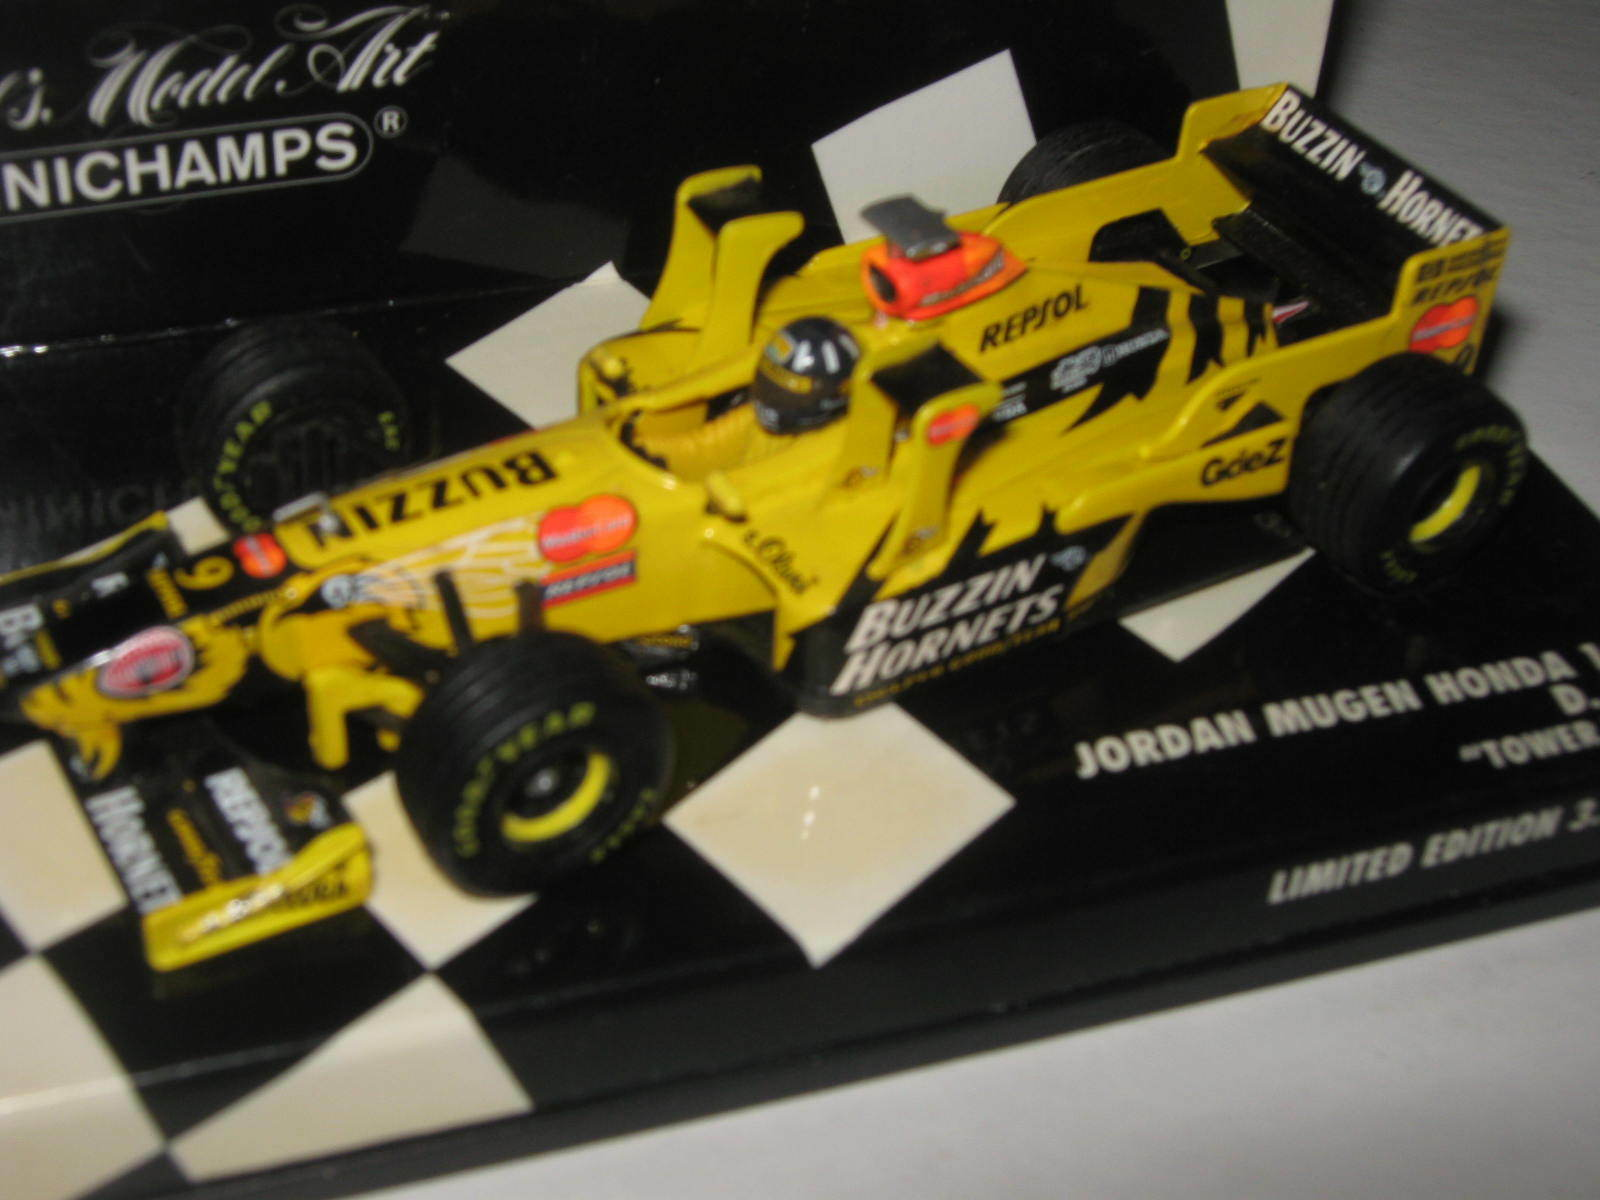 1 43 Jordan Honda 198 Towerwings D. Hill 1998 430980039 MINICHAMPS OVP new